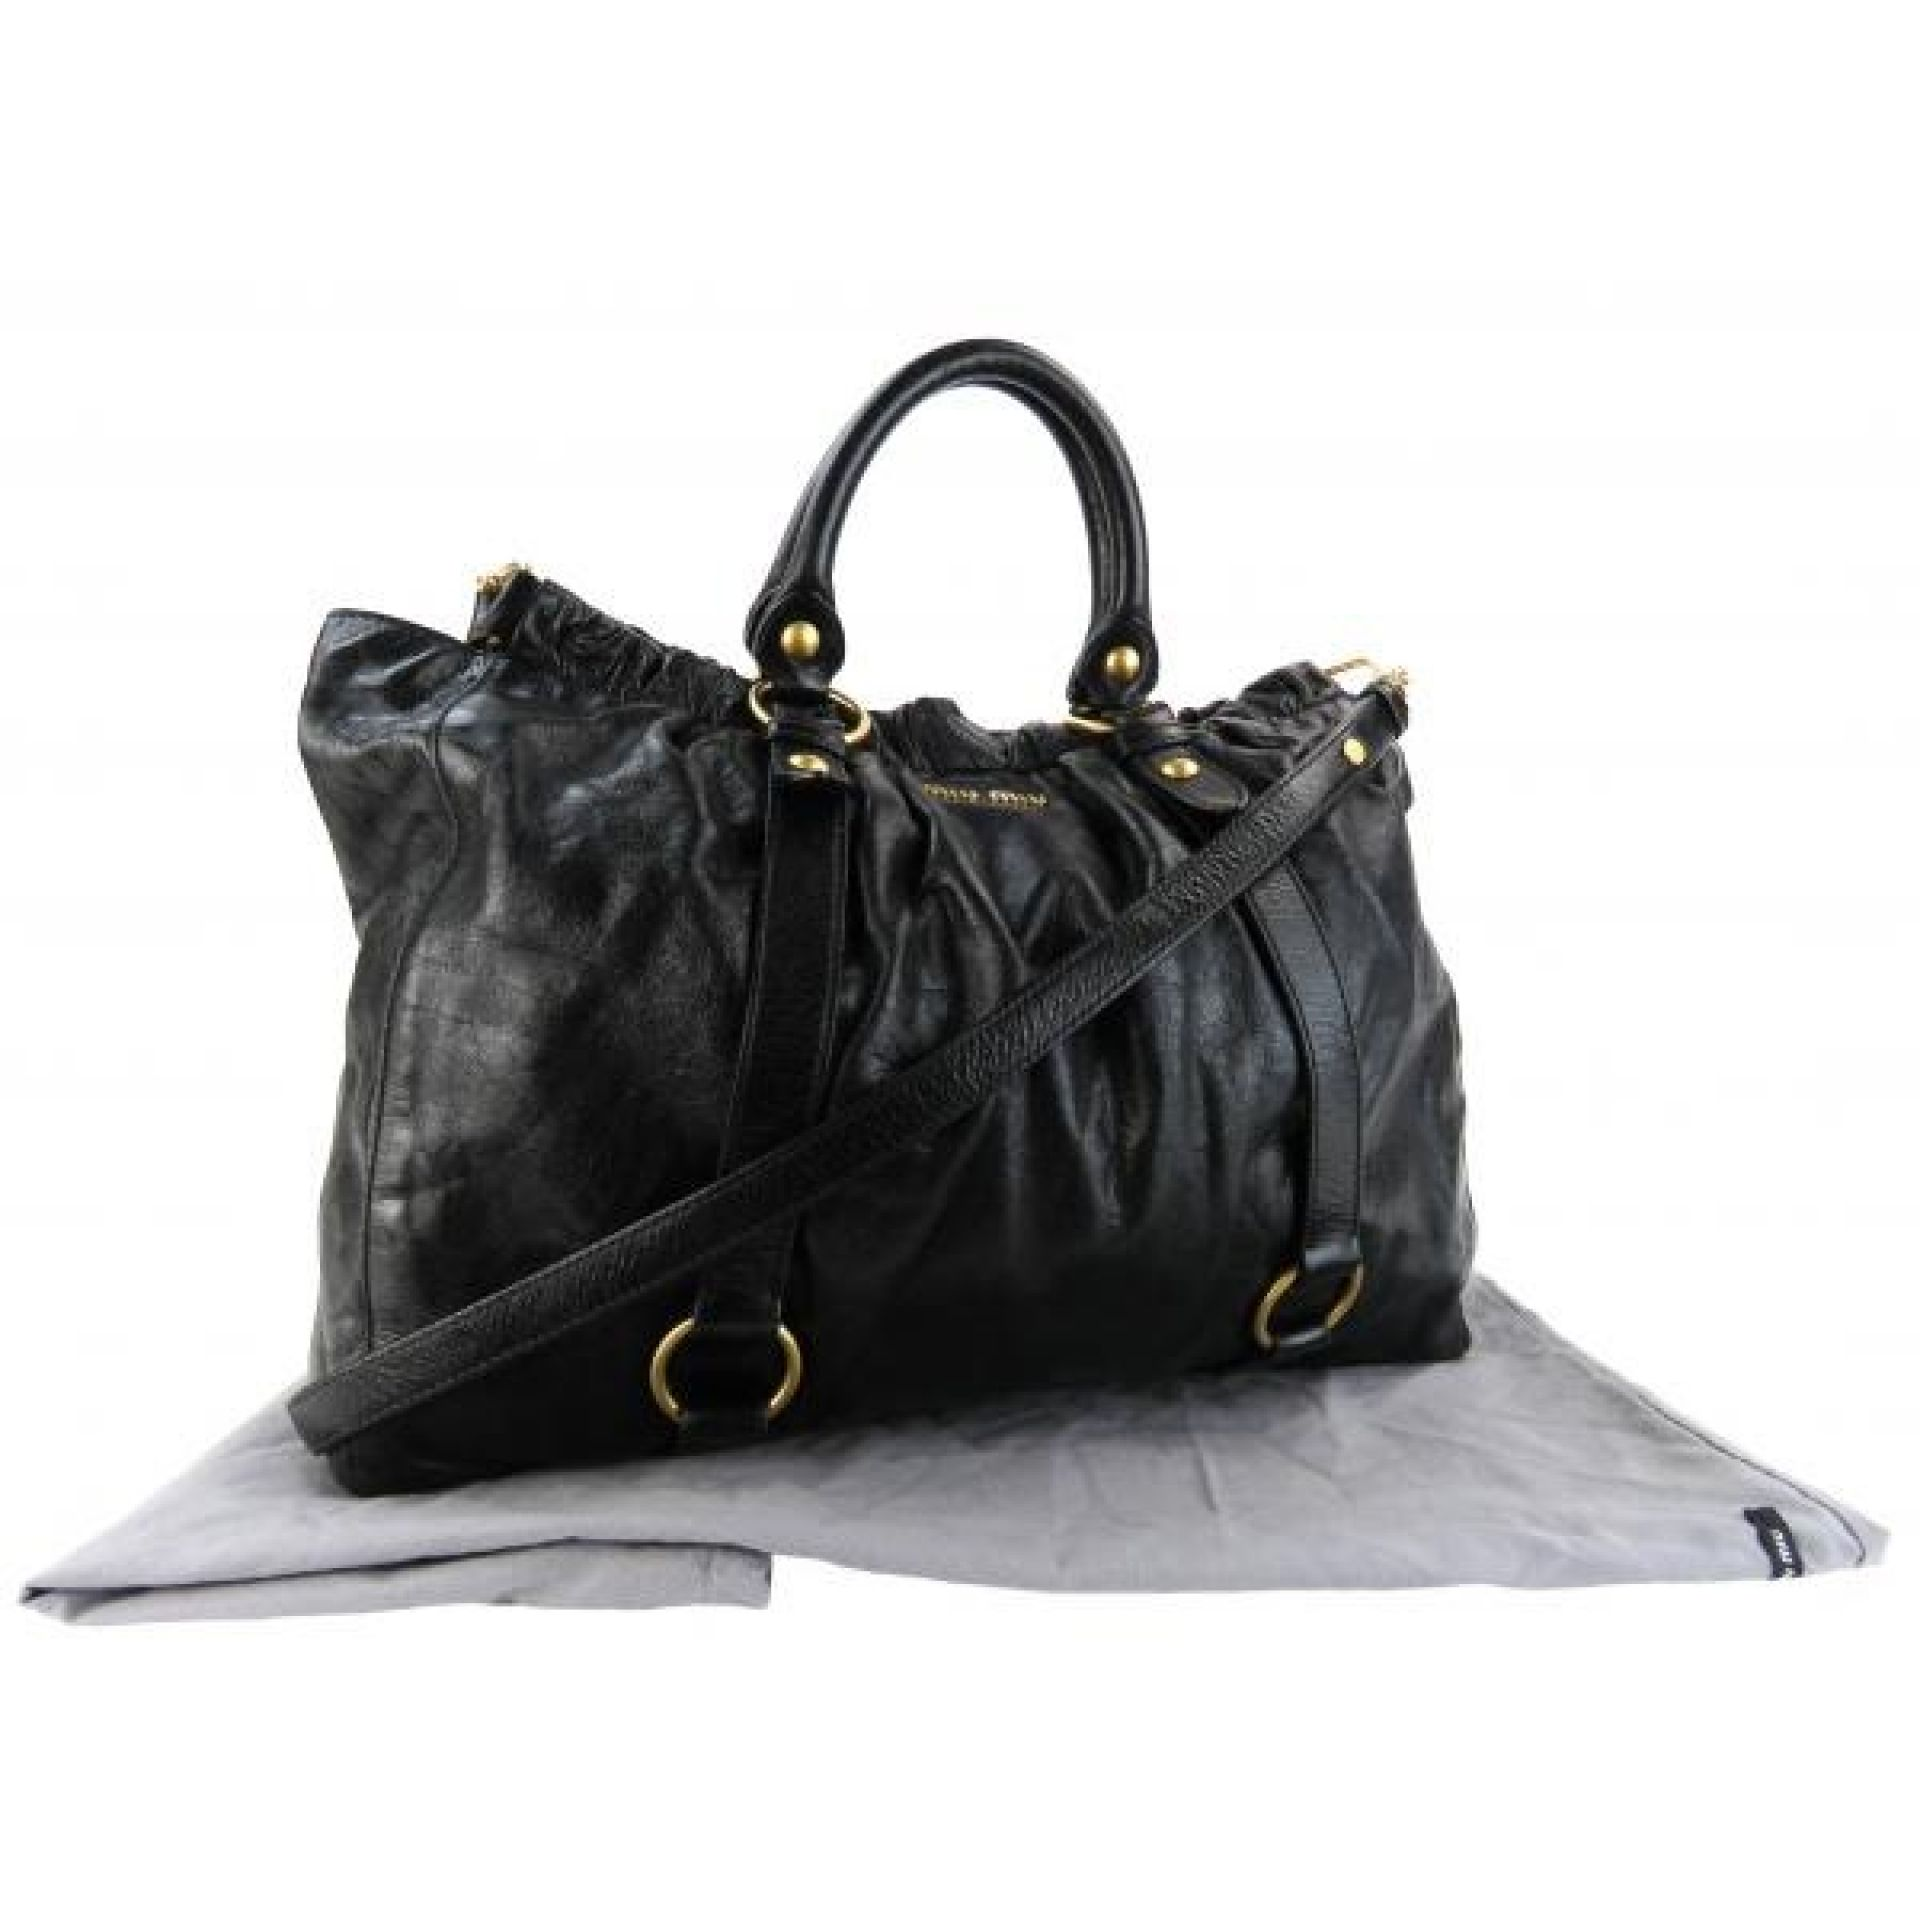 Miu Miu Black Leather Vitello Lux Satchel Bag